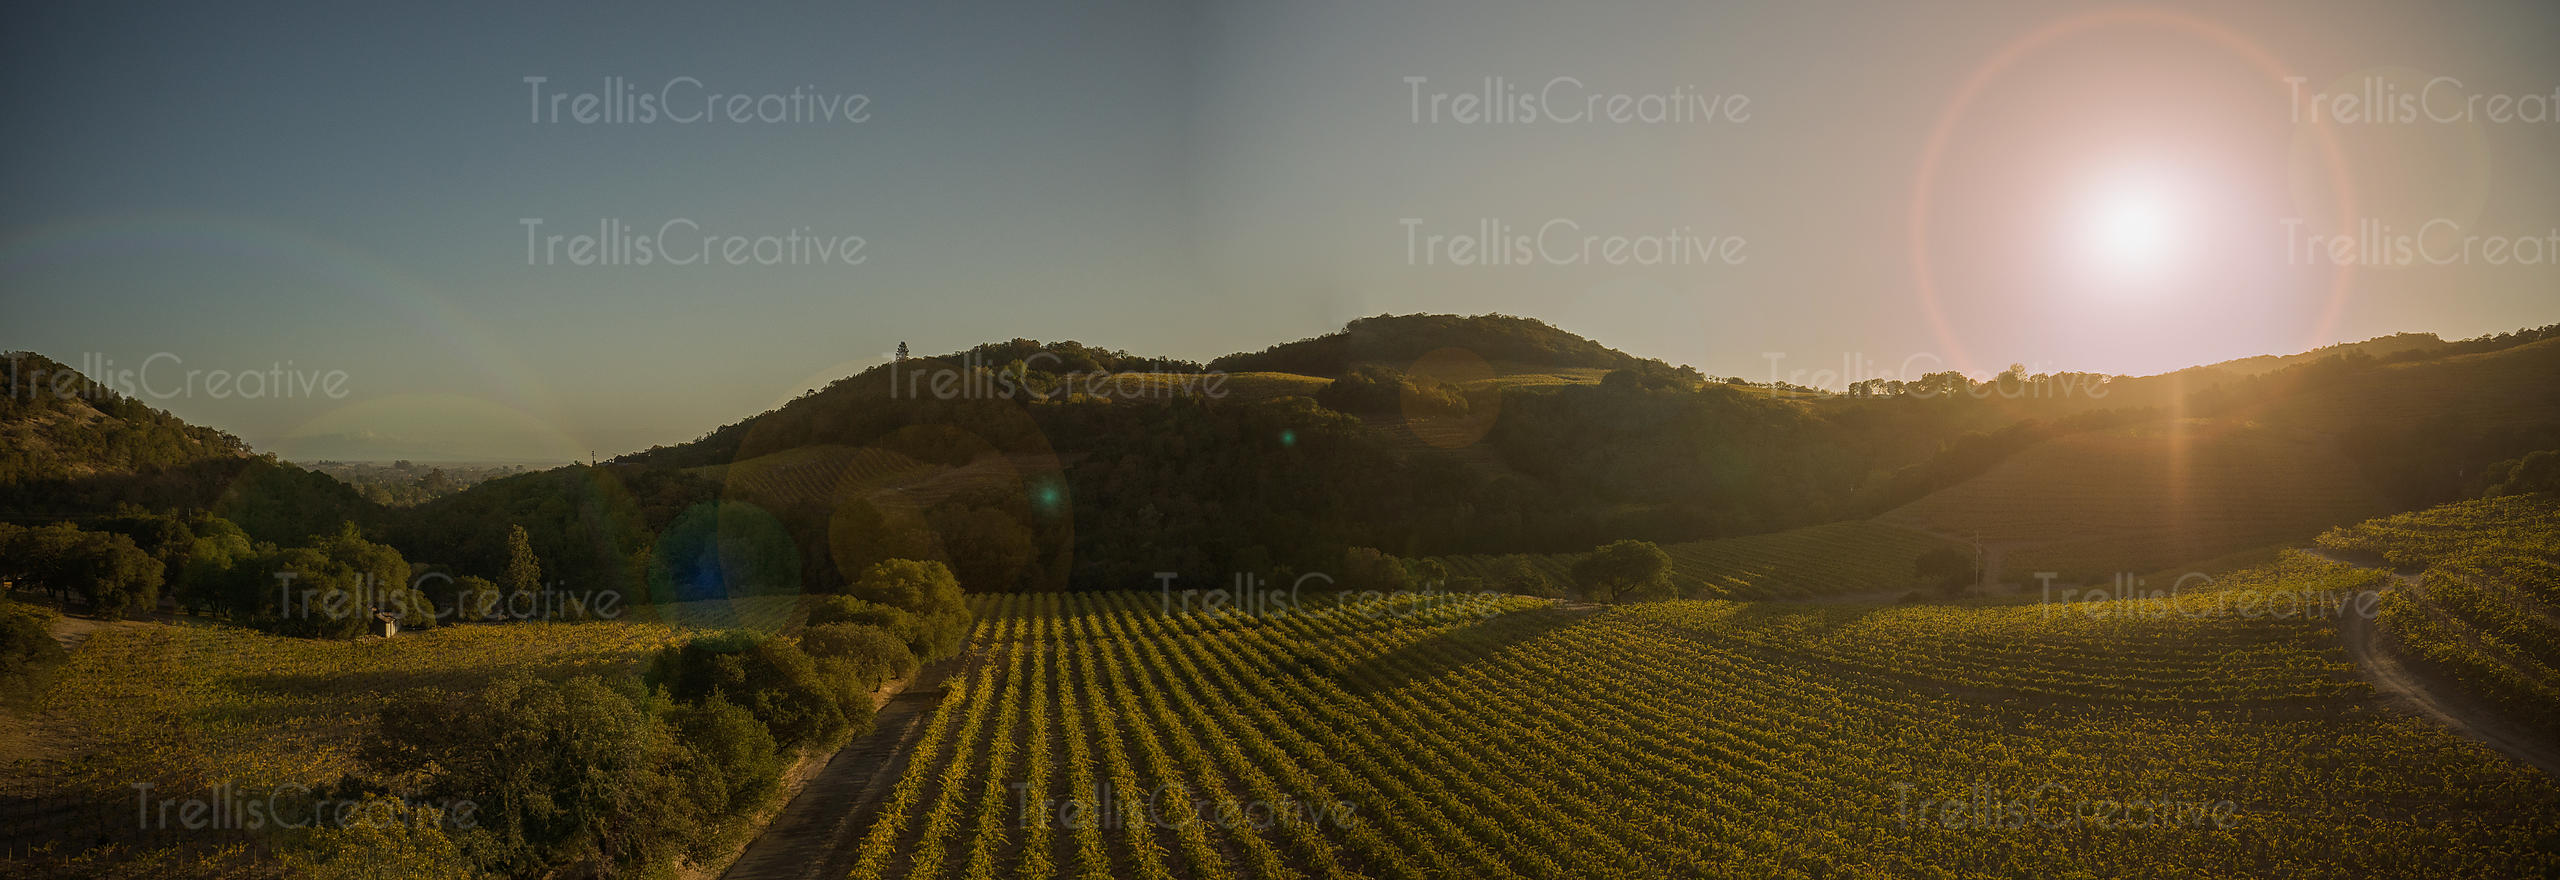 Panoramic ariel view of a vineyard in Sonoma Valley, California